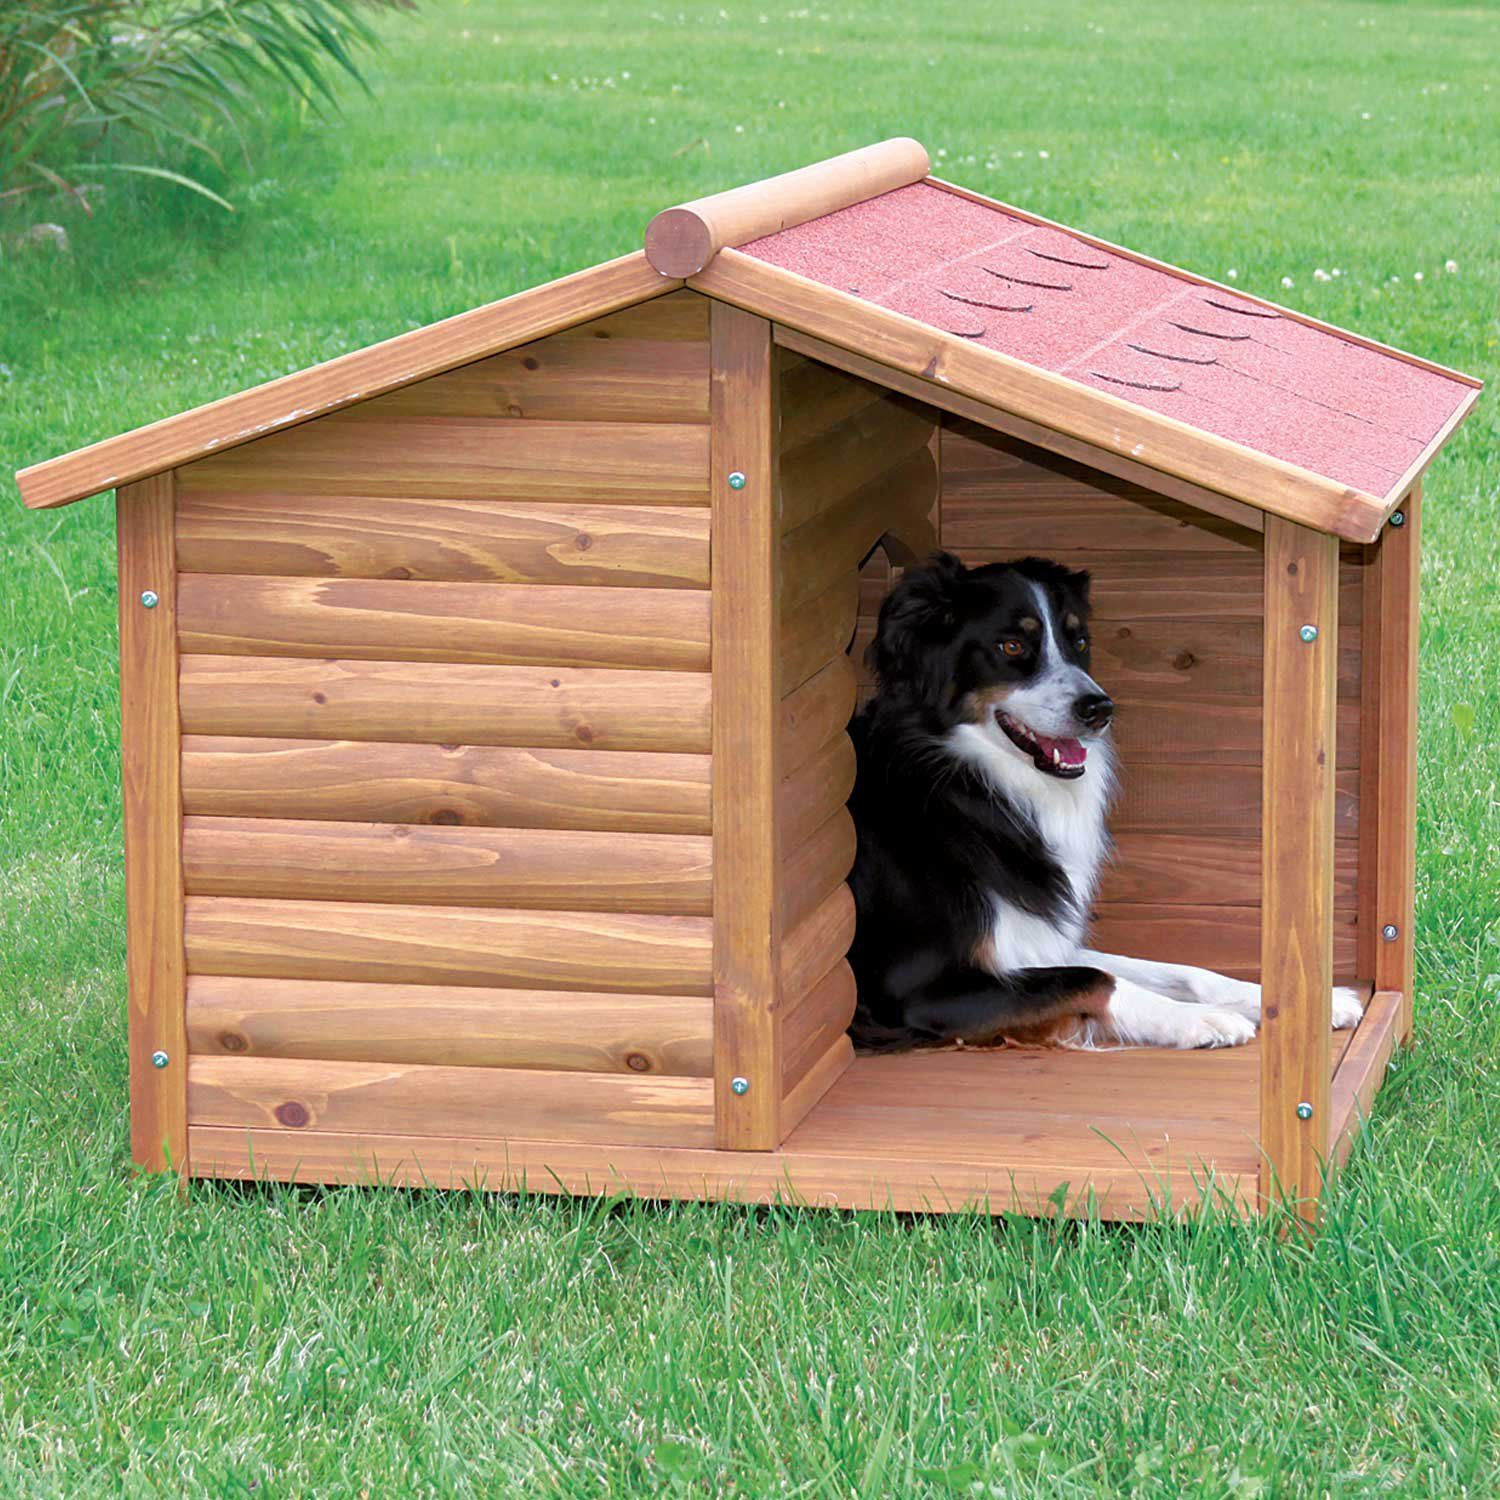 Insulated Dog House Plans Insulated Dog House Dog House Plans